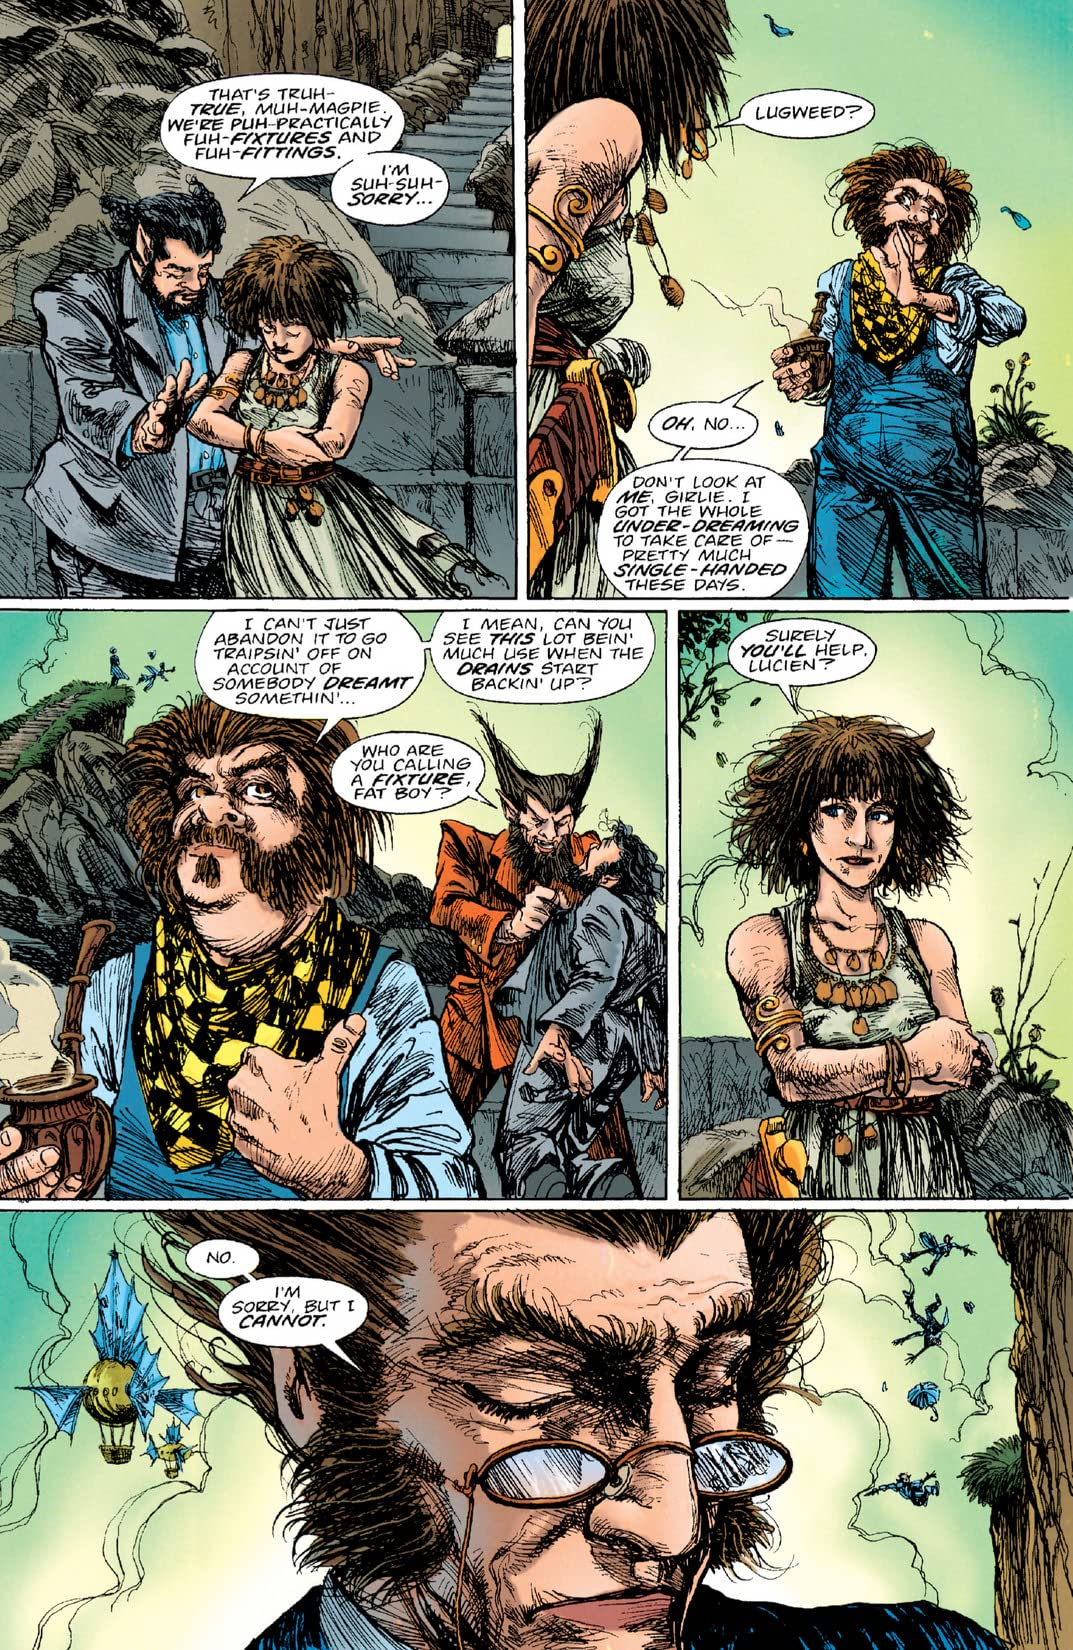 The Sandman Presents: Love Street #2 (of 3)